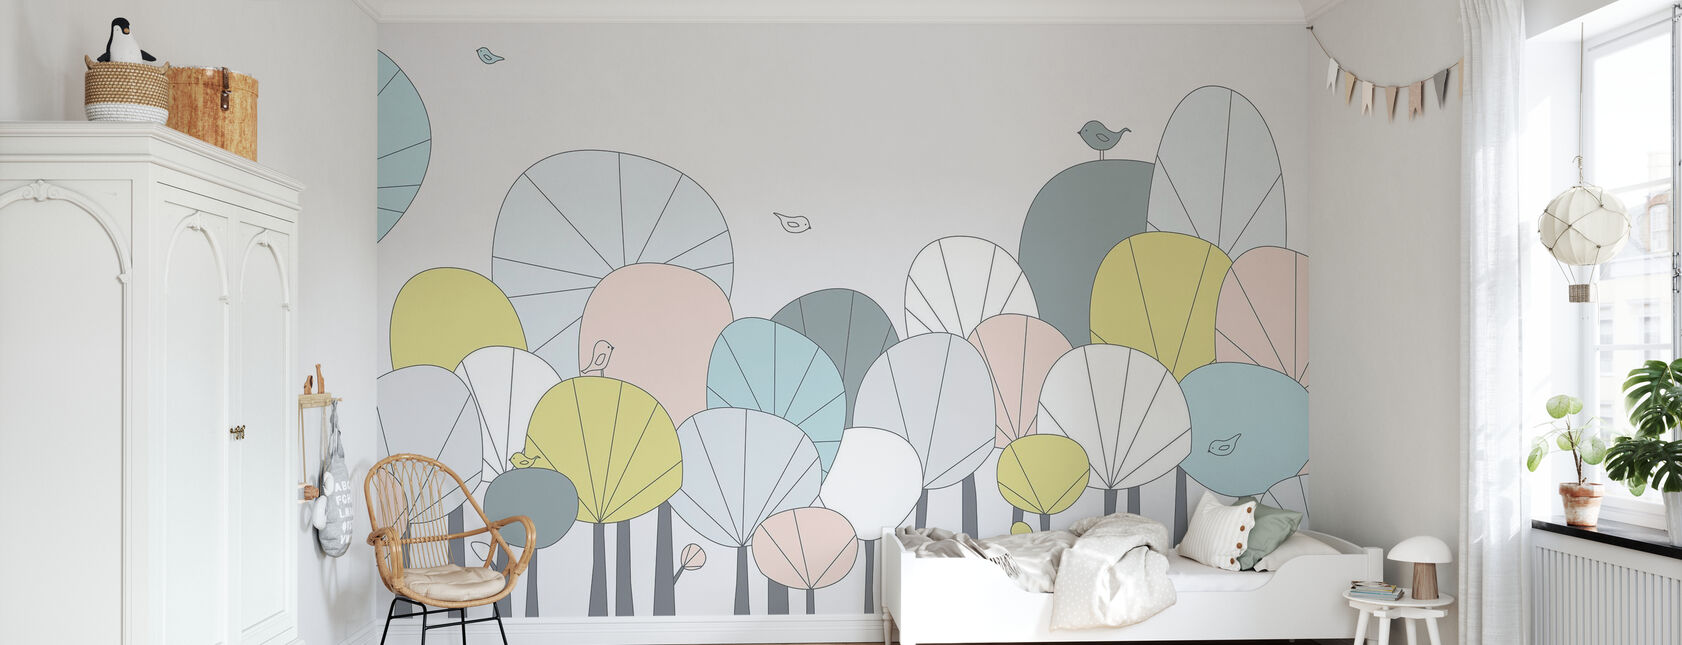 Happy Forest - Pastel - Wallpaper - Kids Room